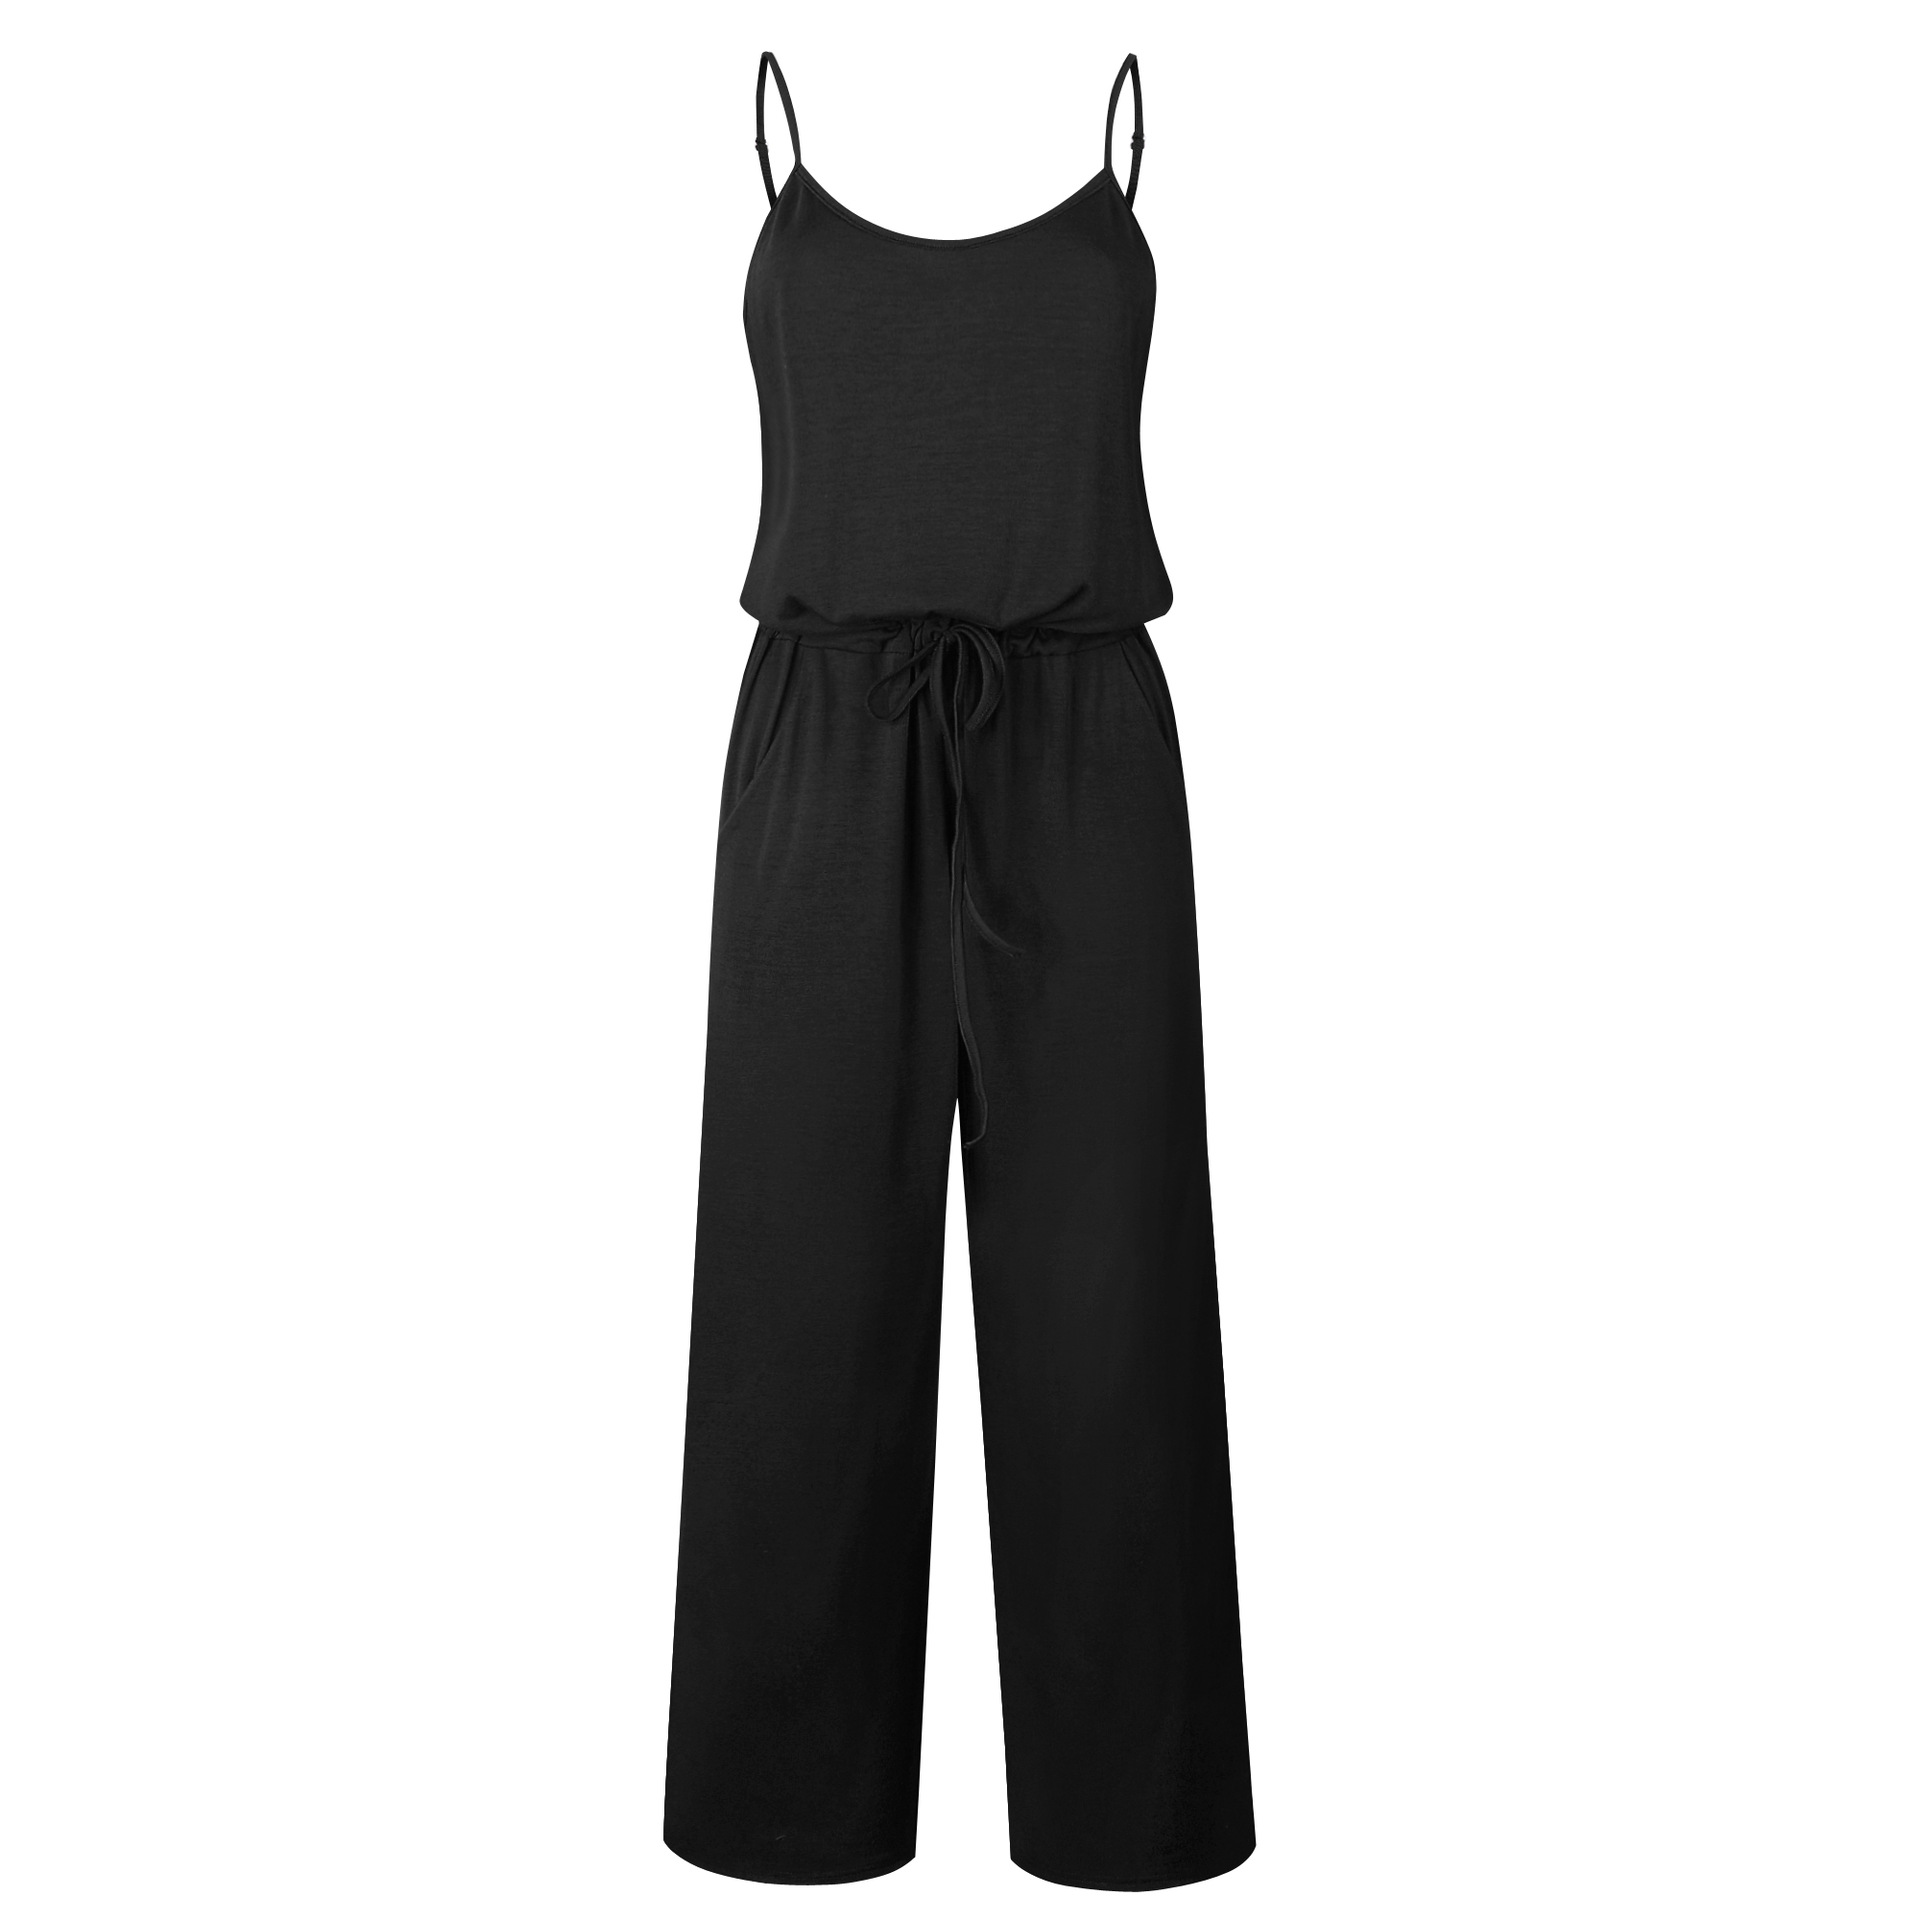 Spaghetti Strap Jumpsuit Women 2018 Summer Long Pants Floral Print Rompers Beach Casual Jumpsuits Sleeveless Sashes Playsuits 56